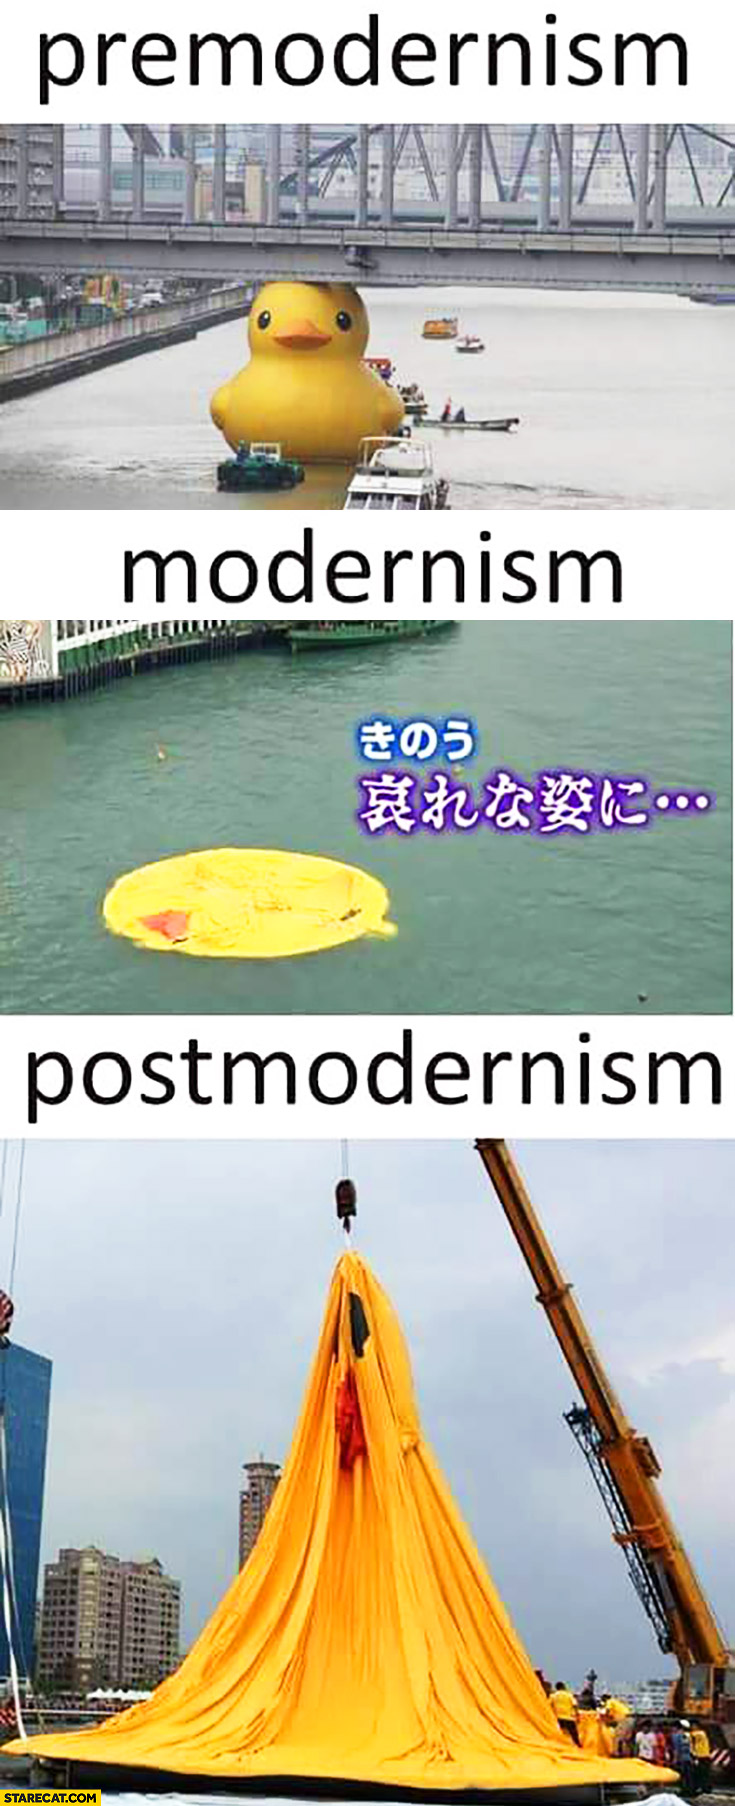 Giant yellow rubber duckie: premodernism, modernism, postmodernism